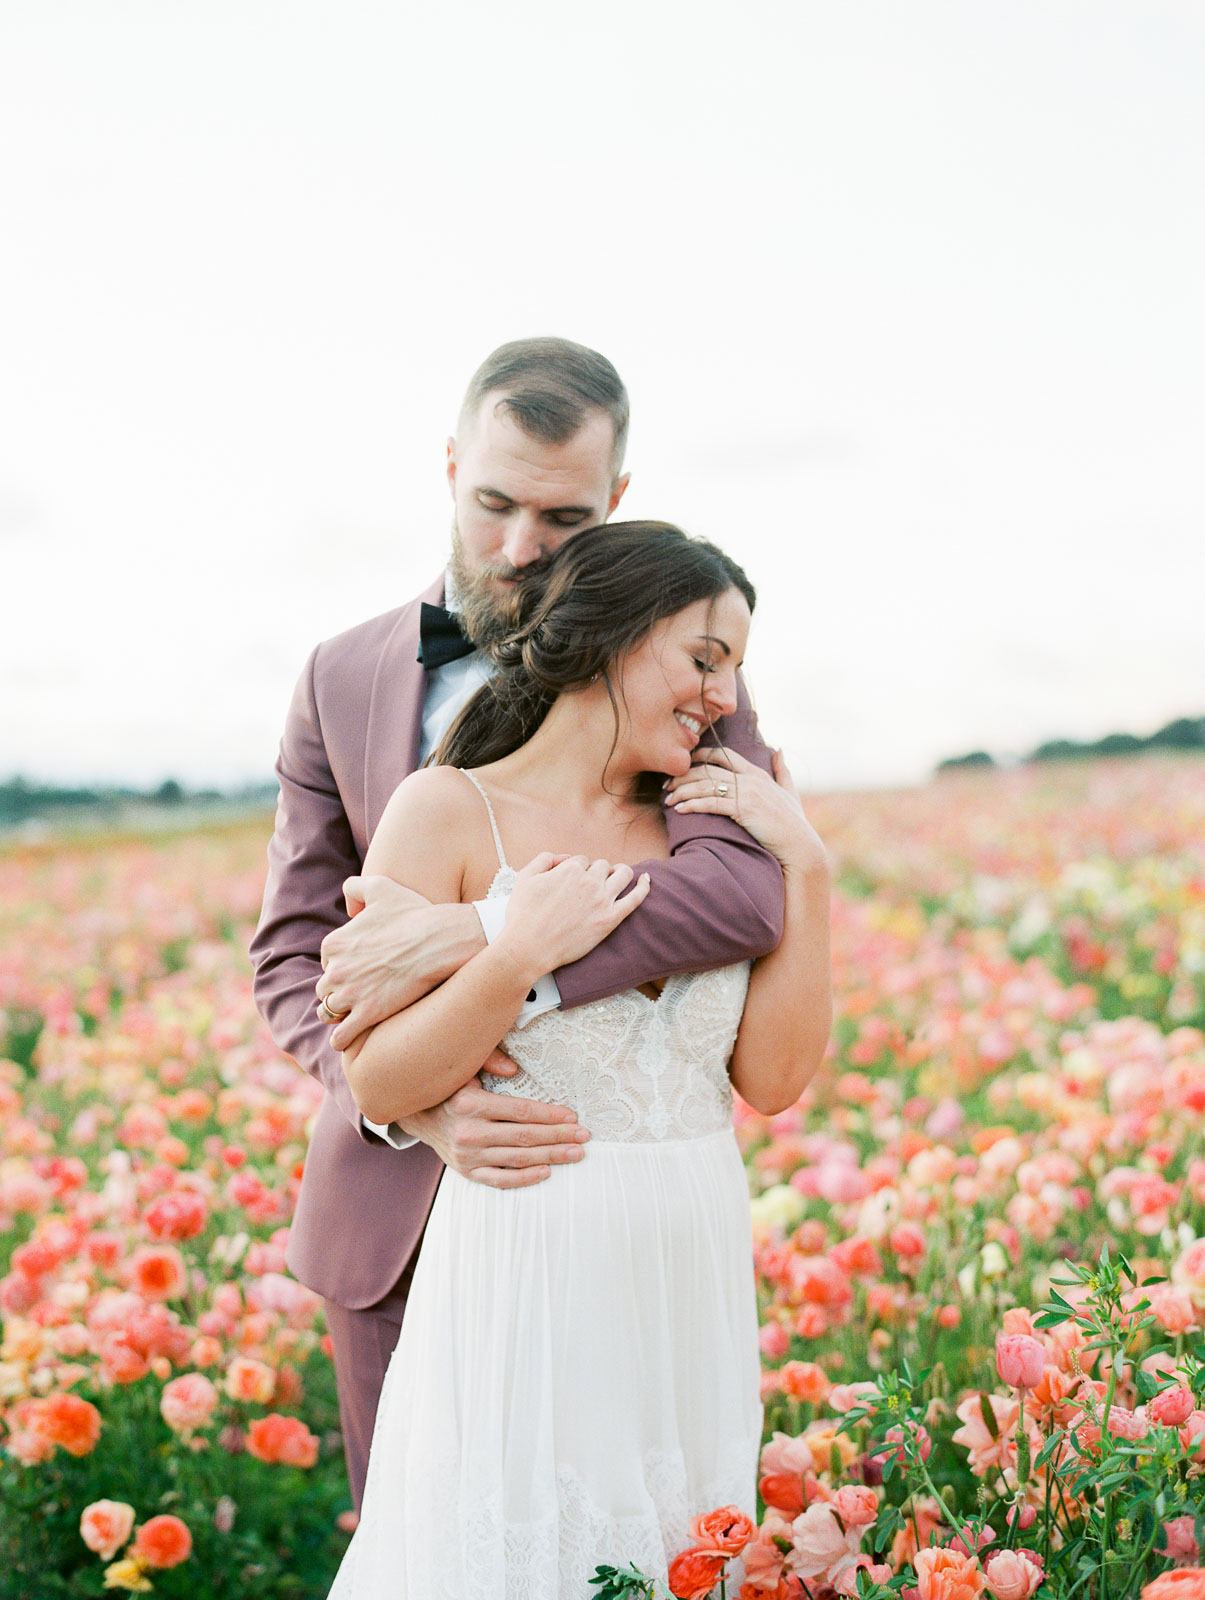 groom embracing bride from behind bride smiling surrounded by pink flowers